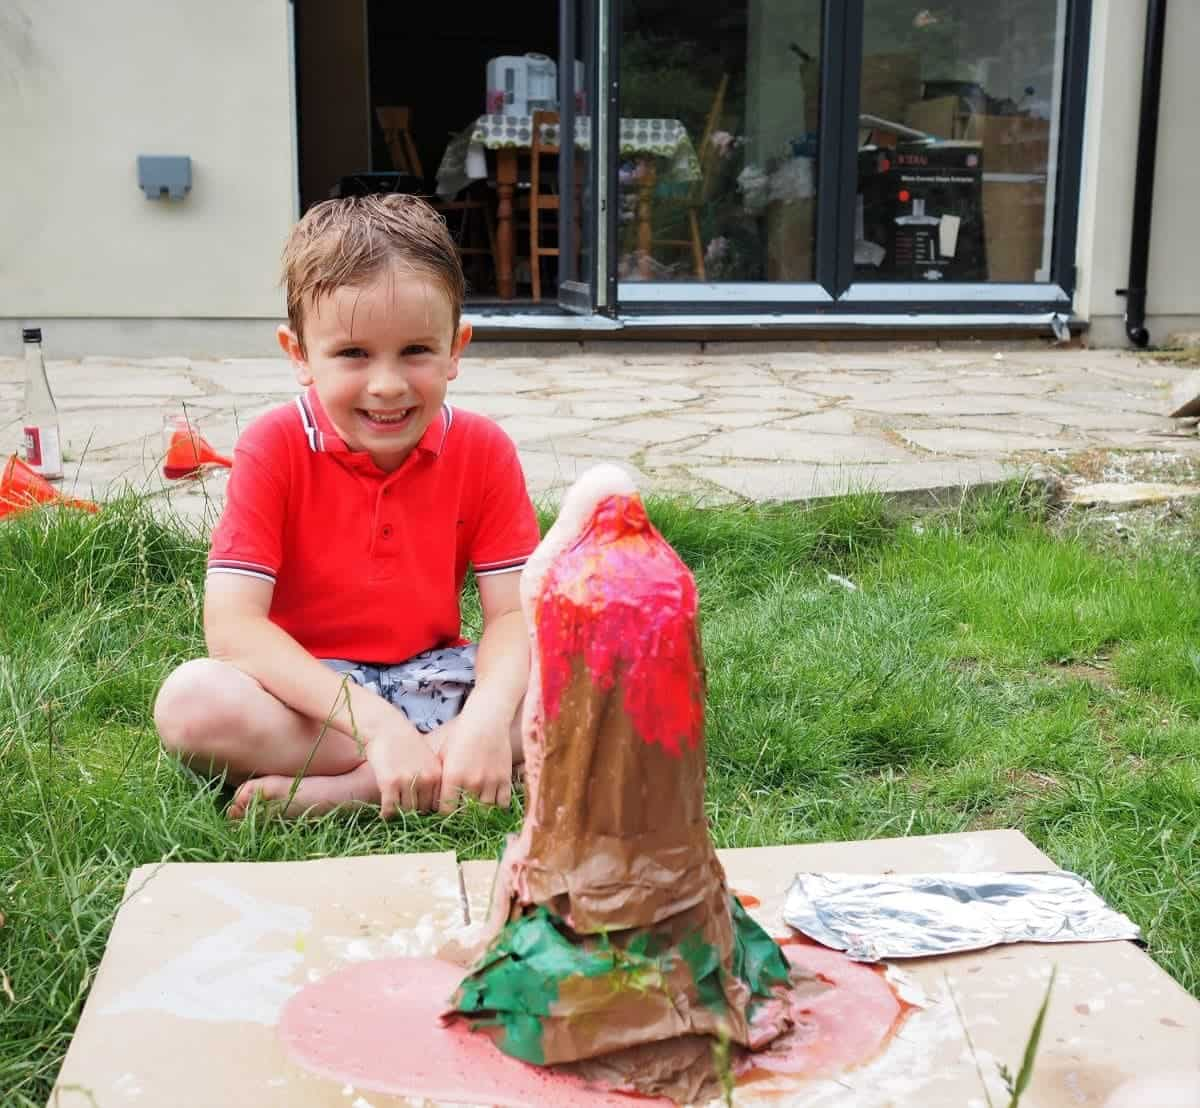 How to make an Erupting Volcano. School Science Project. Bicarbonate of Soda Science Project